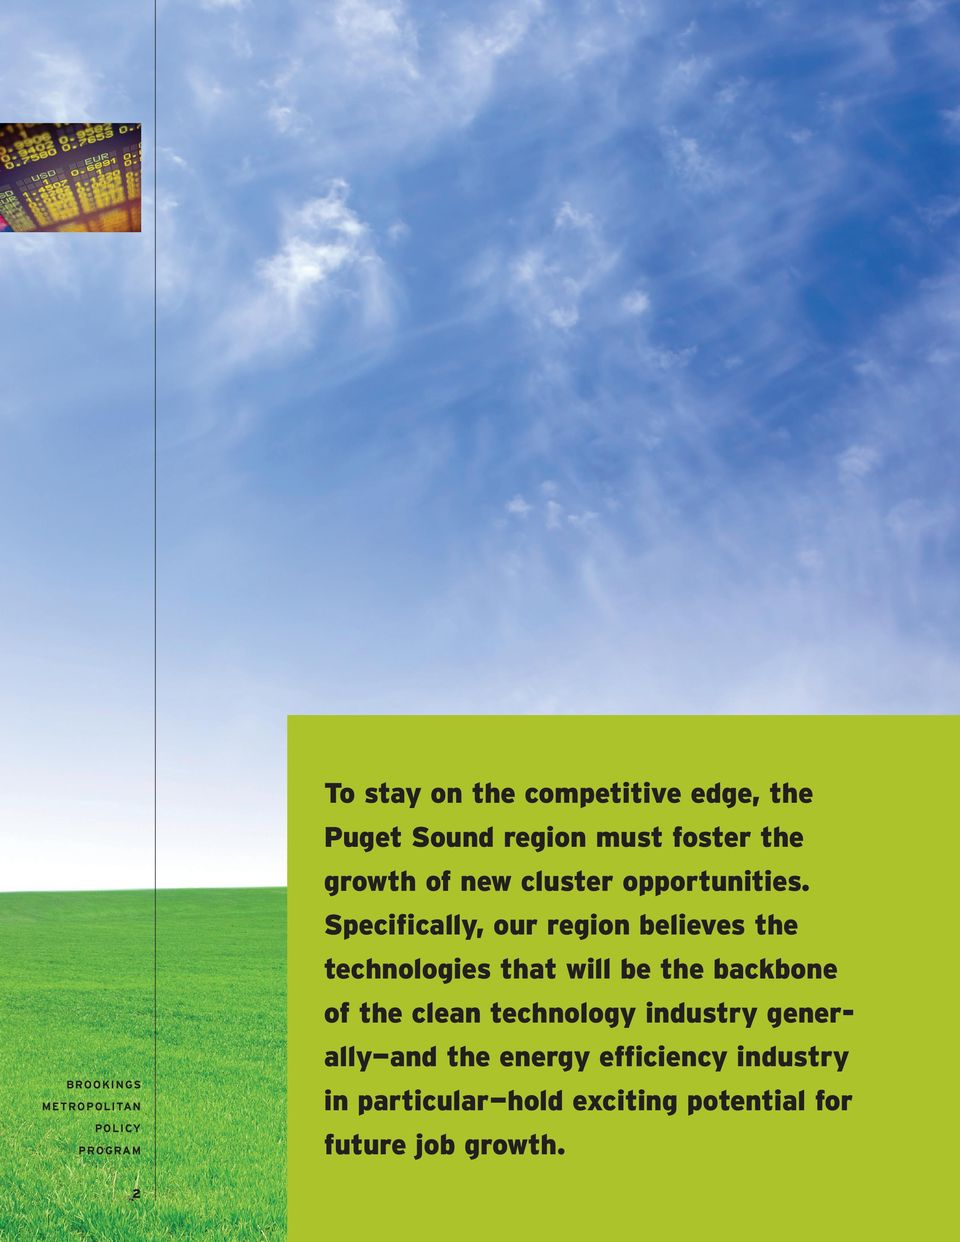 Specifically, our region believes the technologies that will be the backbone of the clean